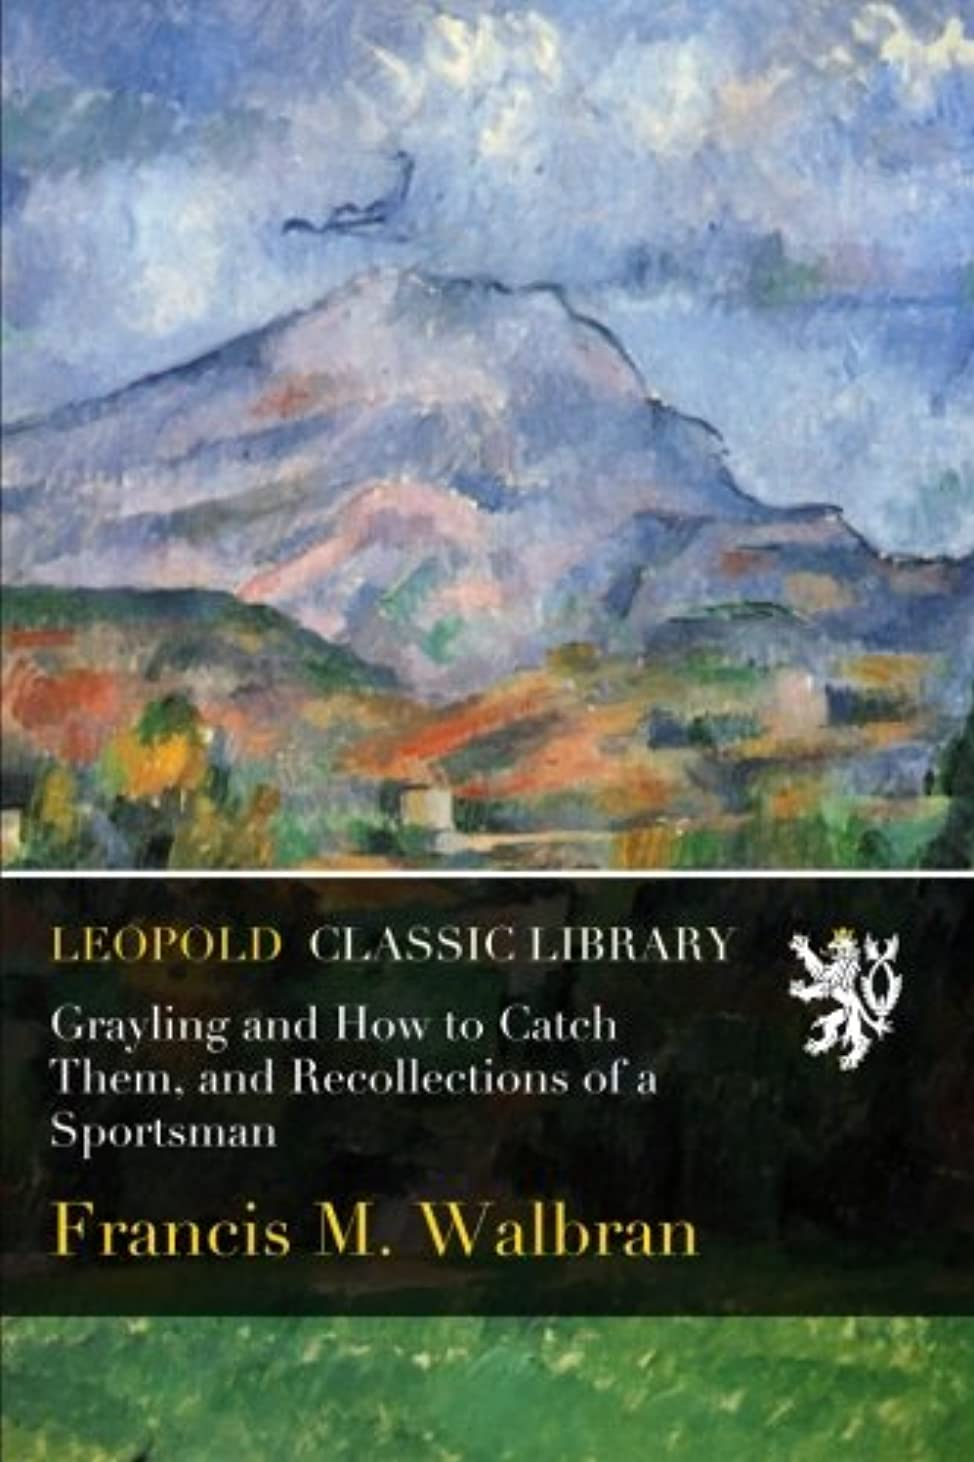 唯物論まもなく摩擦Grayling and How to Catch Them, and Recollections of a Sportsman